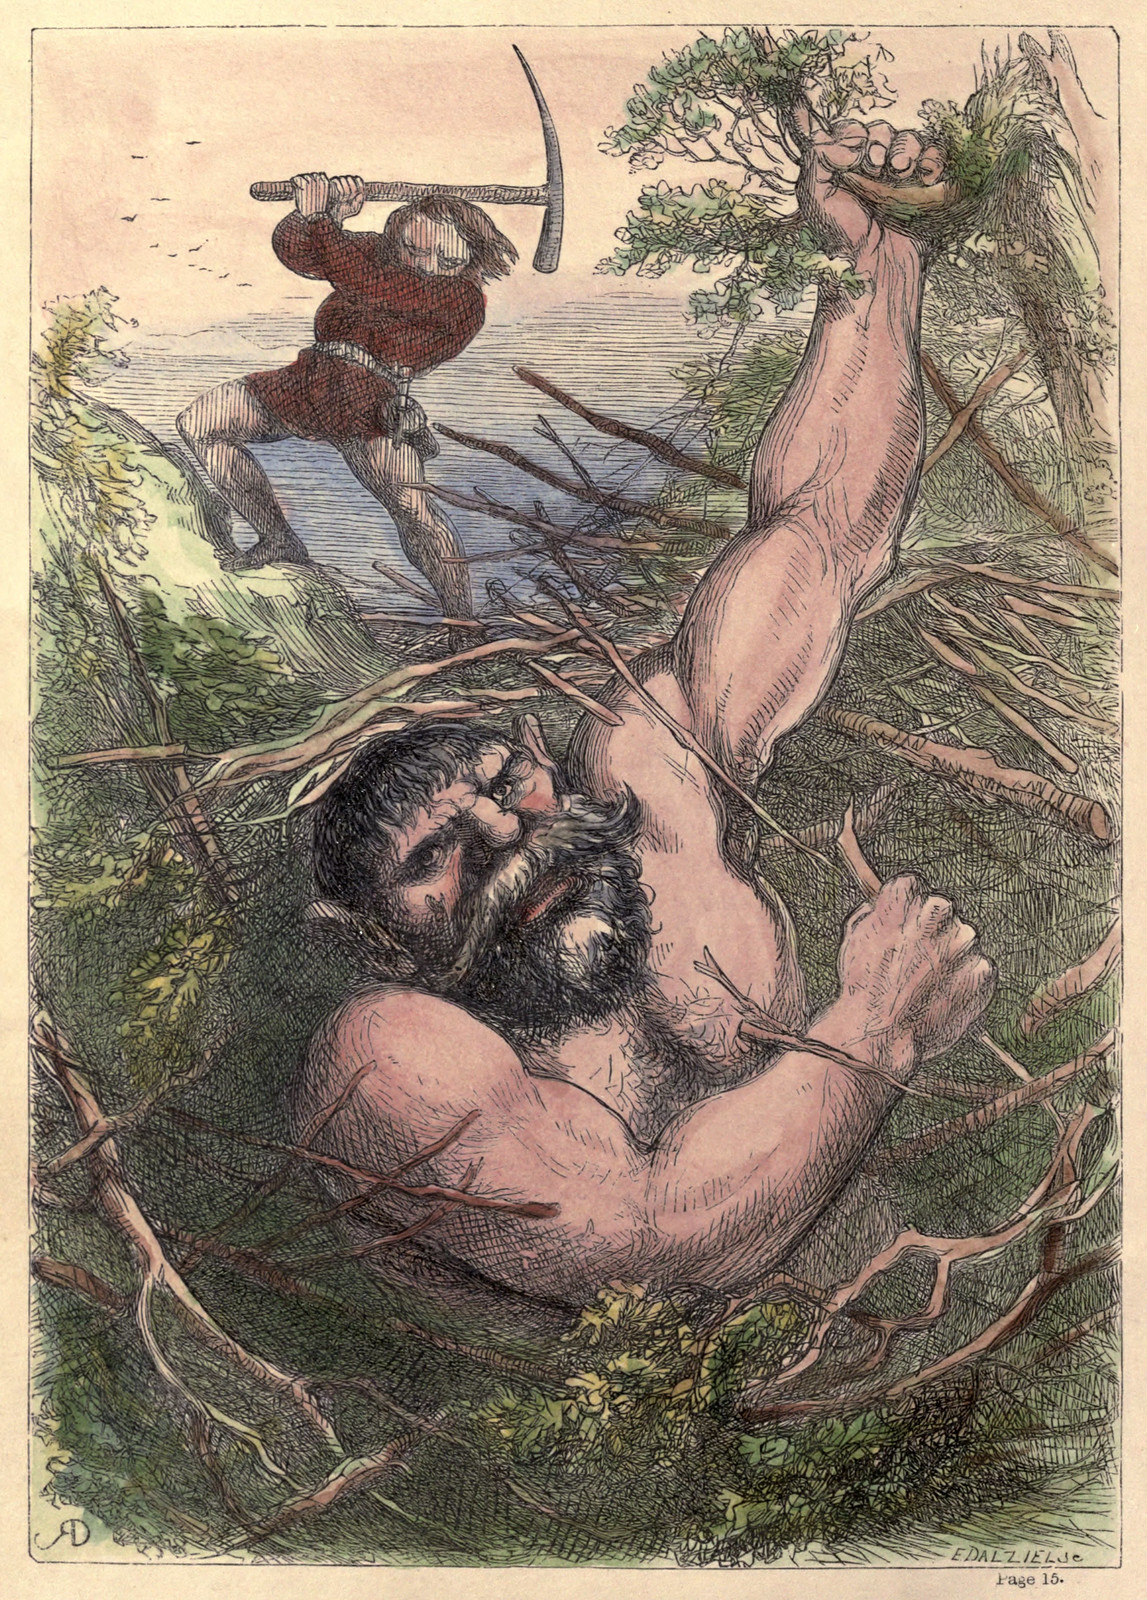 Richard Doyle - The Story of Jack and the Giant, 1851, Illustration 10